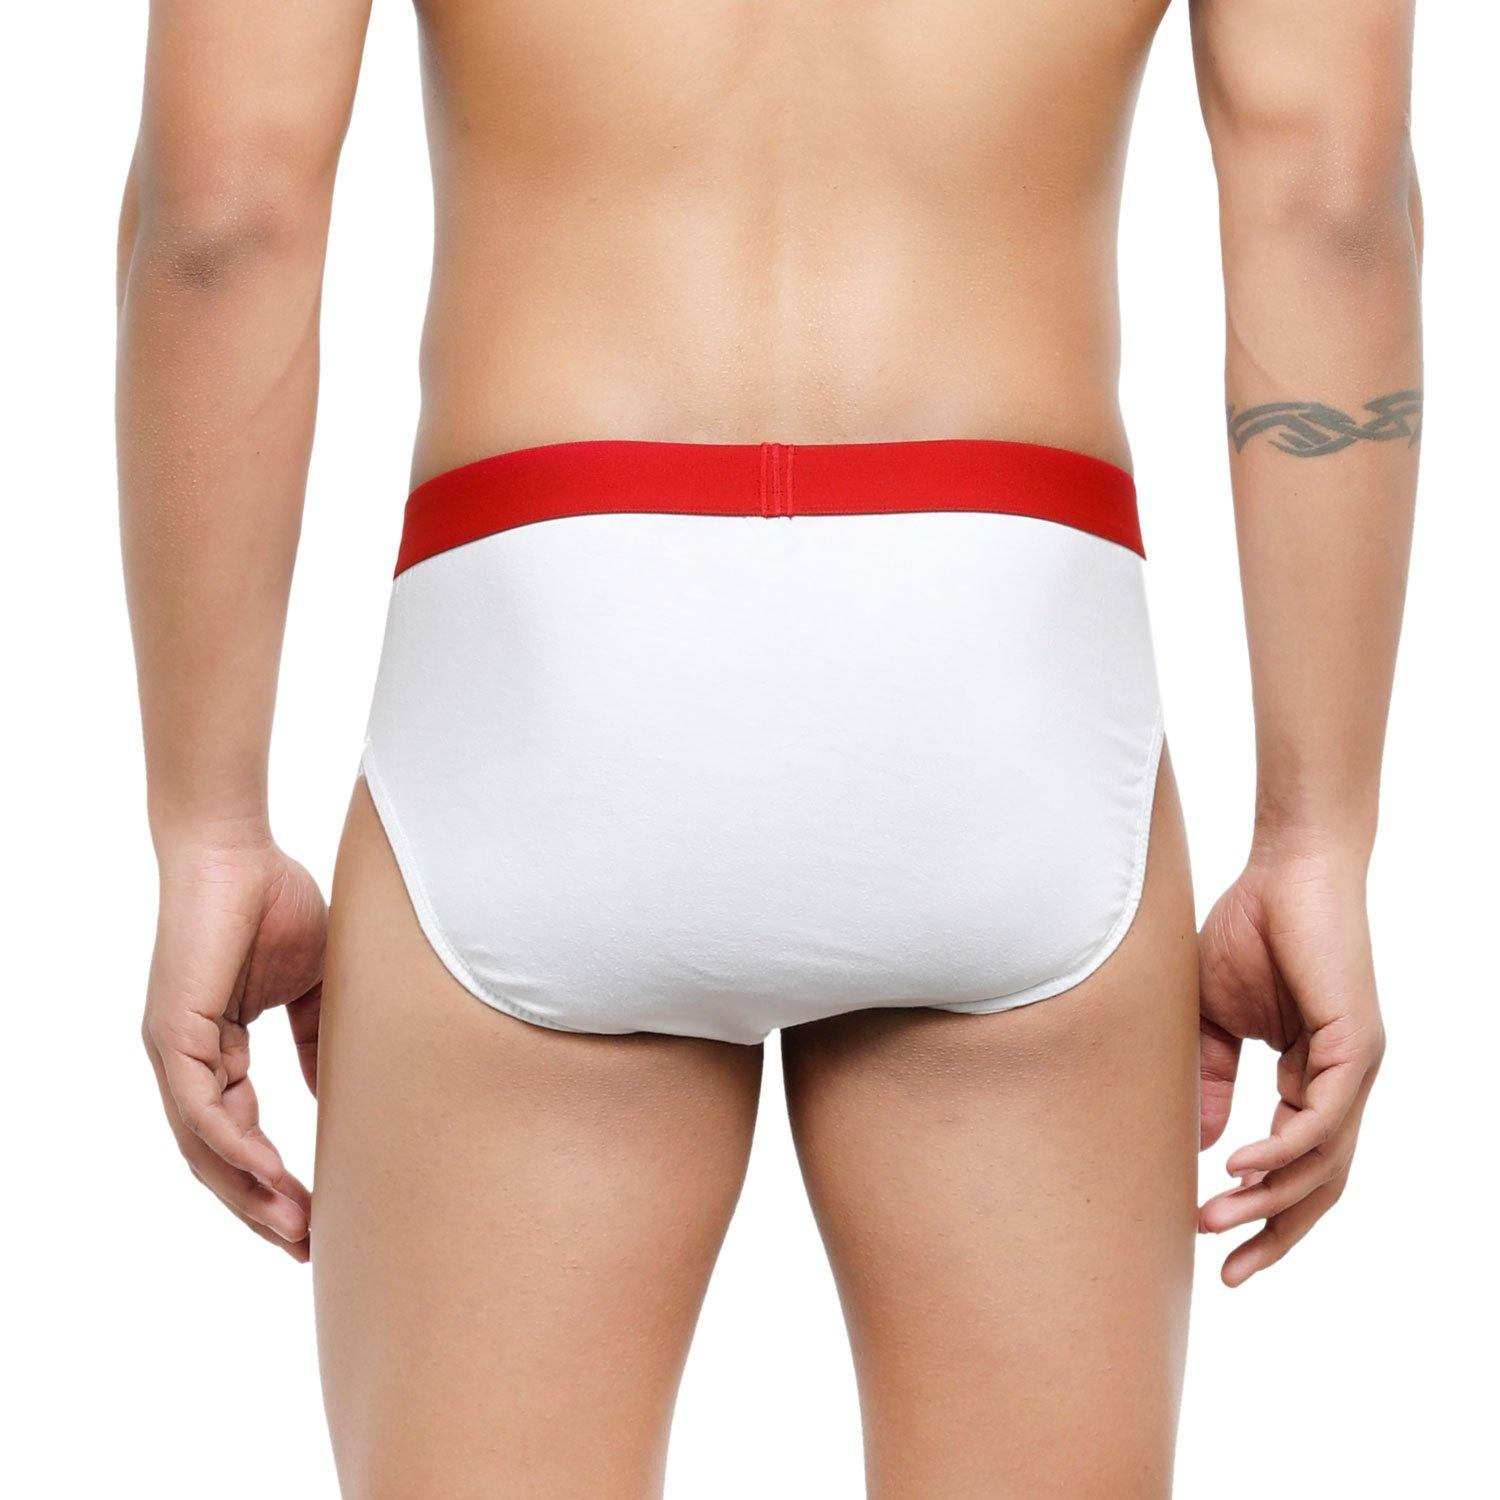 Men's Low-Rise Premia Cotton Briefs With Elasticated Band